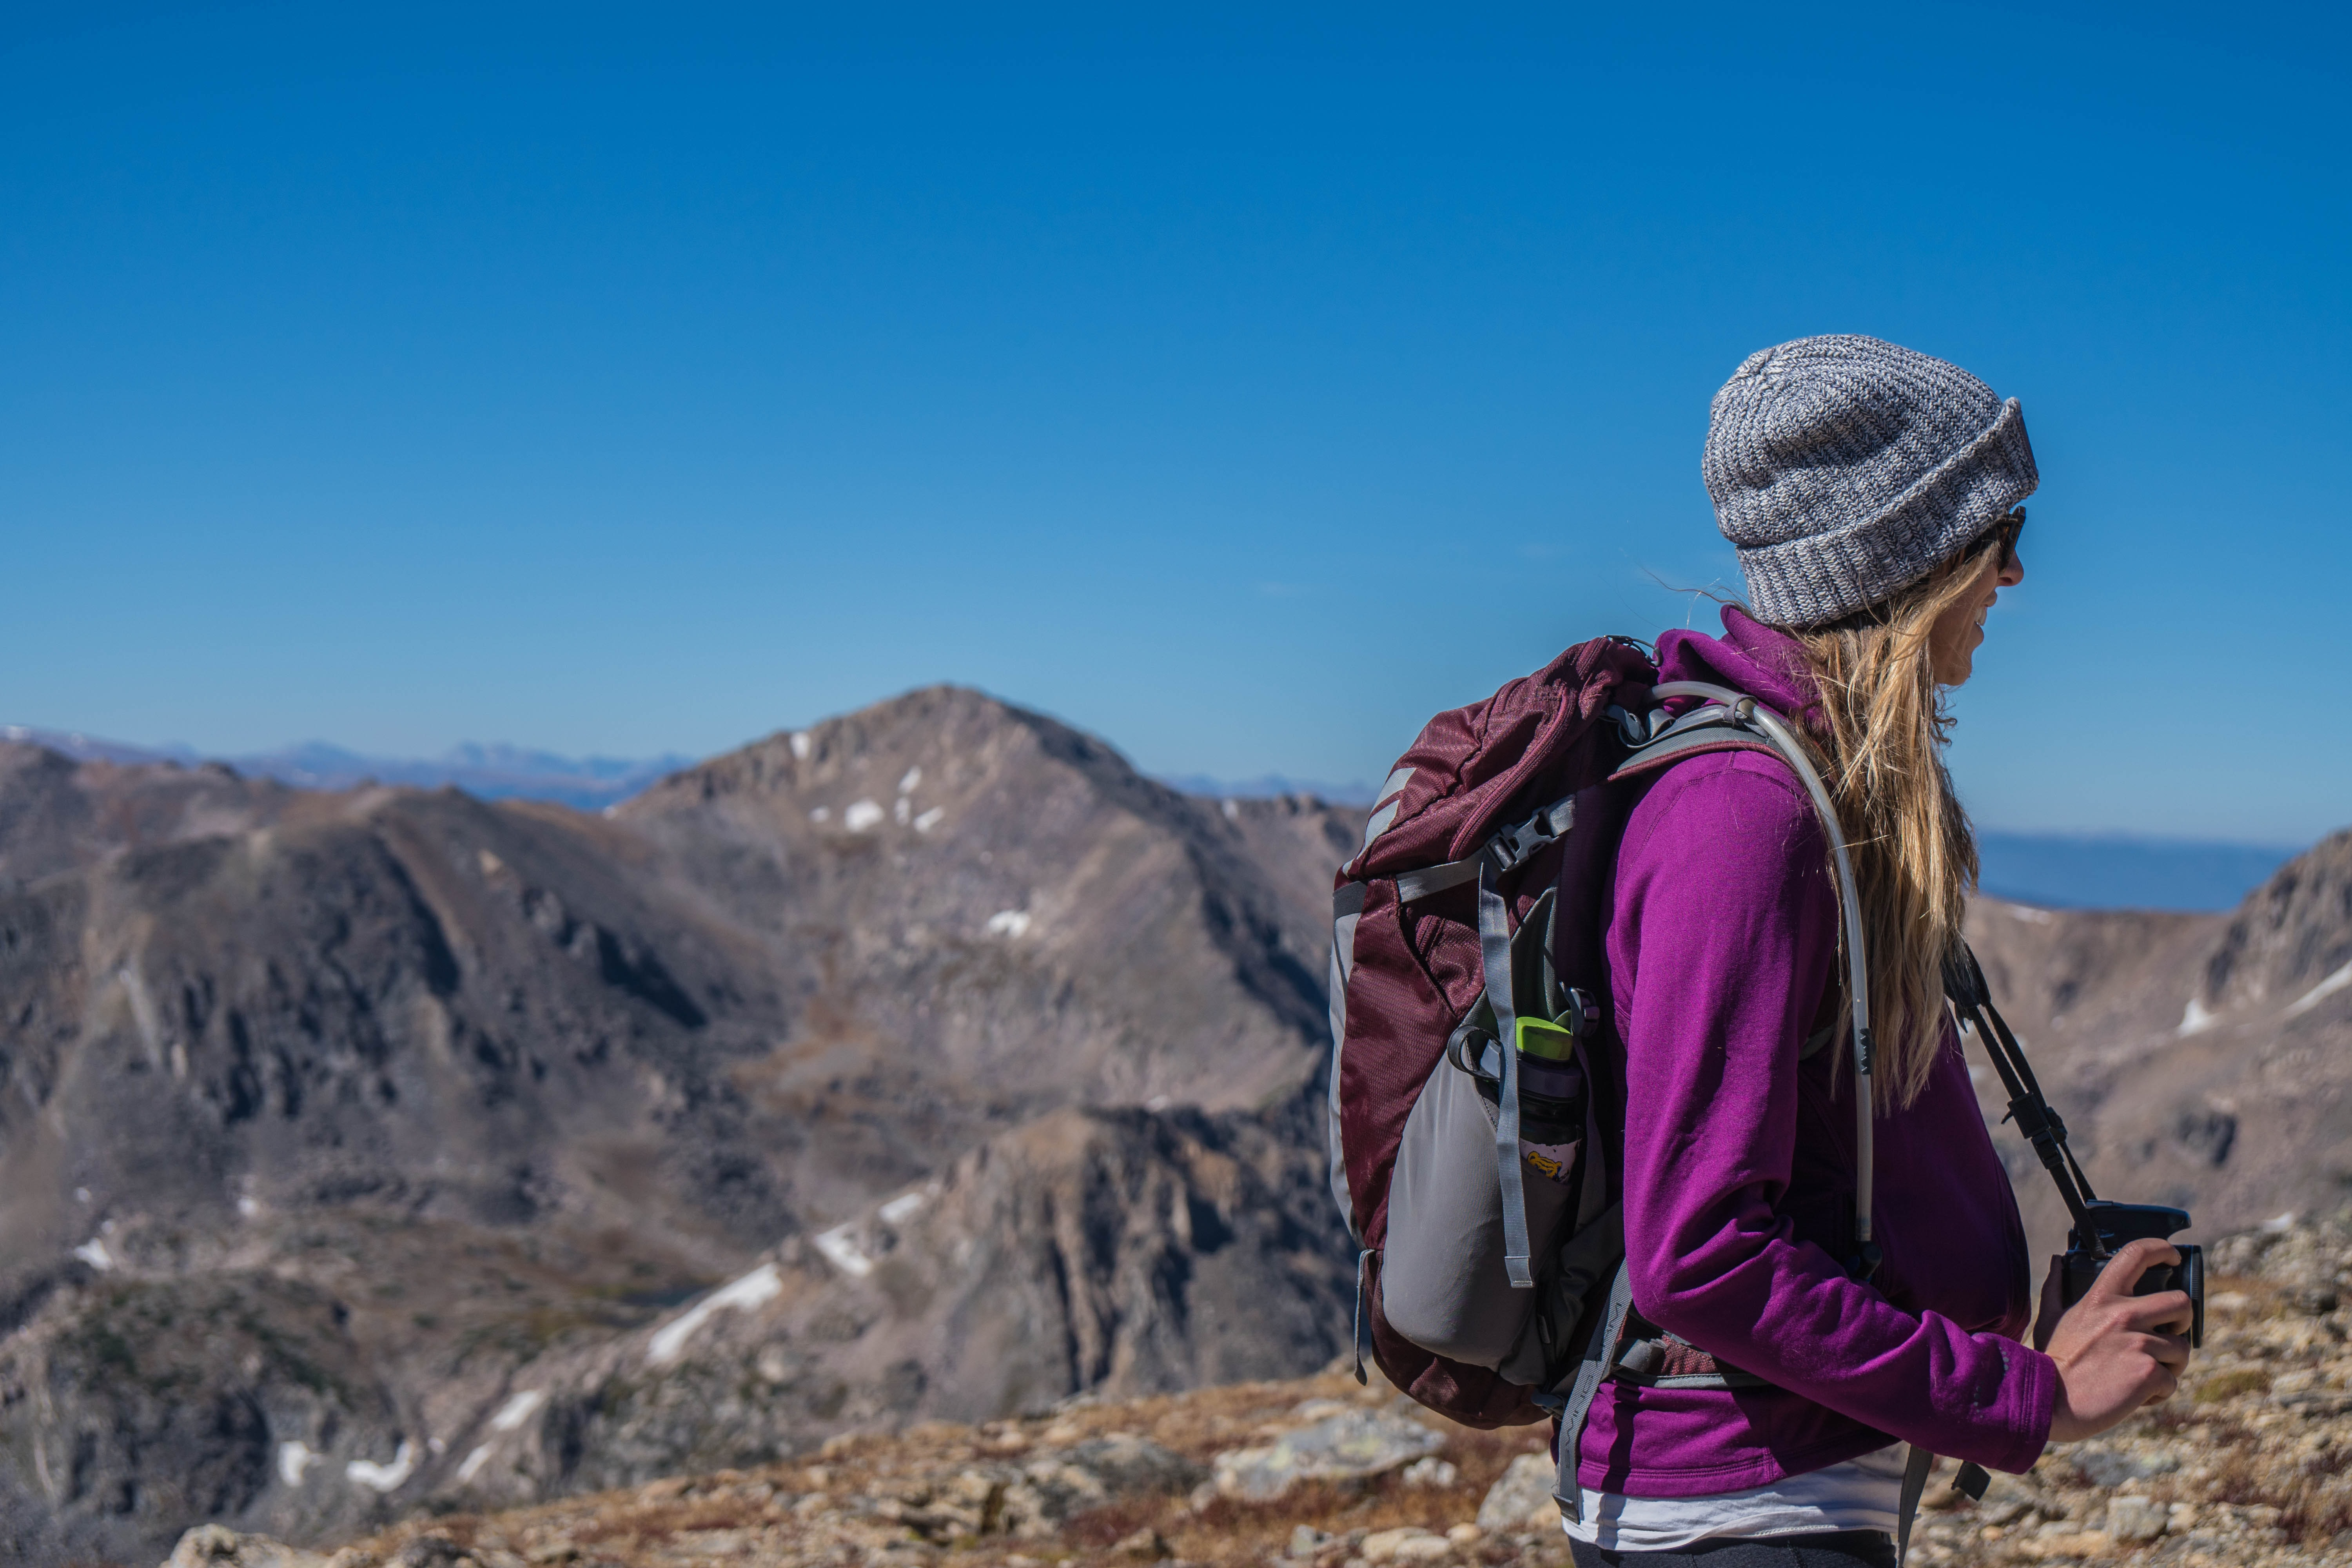 A woman in a backpack and knit cap holds a camera while hiking at James Peak